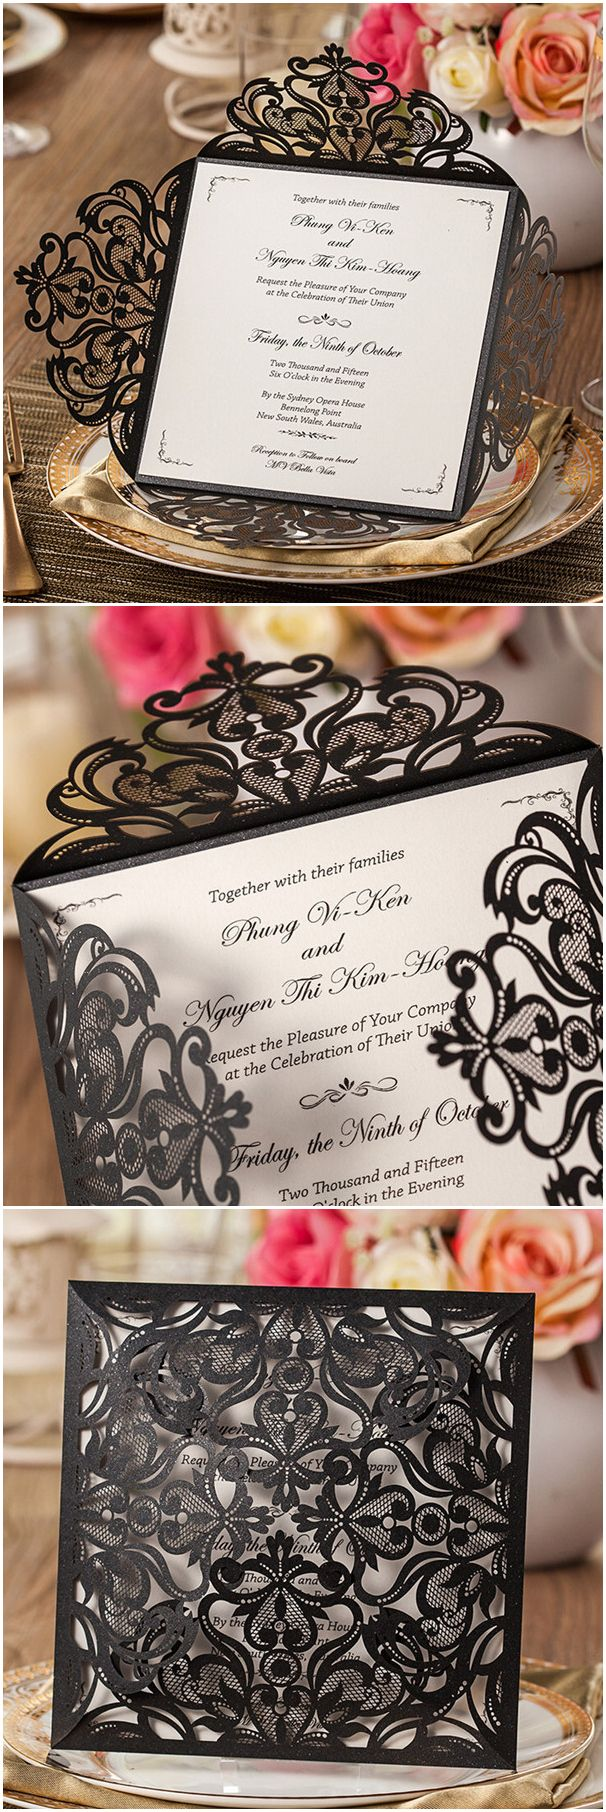 Michaels crafts wedding invitations - Wedding Invitations Michaels Craft Store Wedding Invitations Michaels Craft Store Elegant Black Laser Cut Pocket